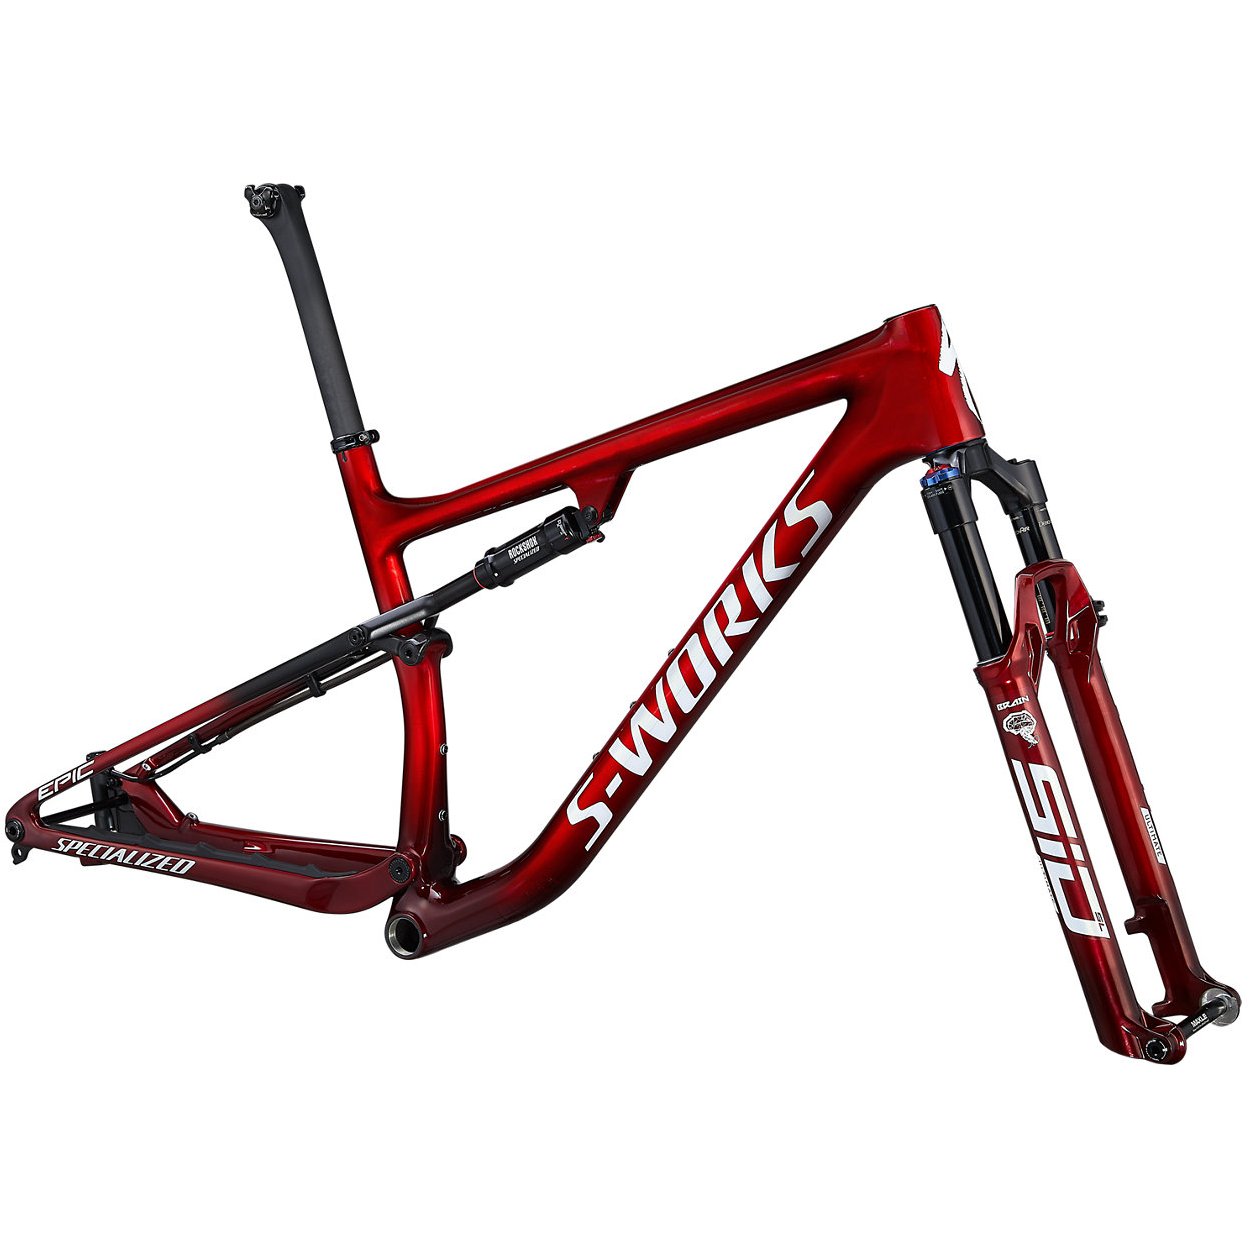 """Specialized S-WORKS EPIC - 29"""" Cuadro de montaña de Carbono - 2022 - gloss red tint / brushed silver / Tarmac black/white"""